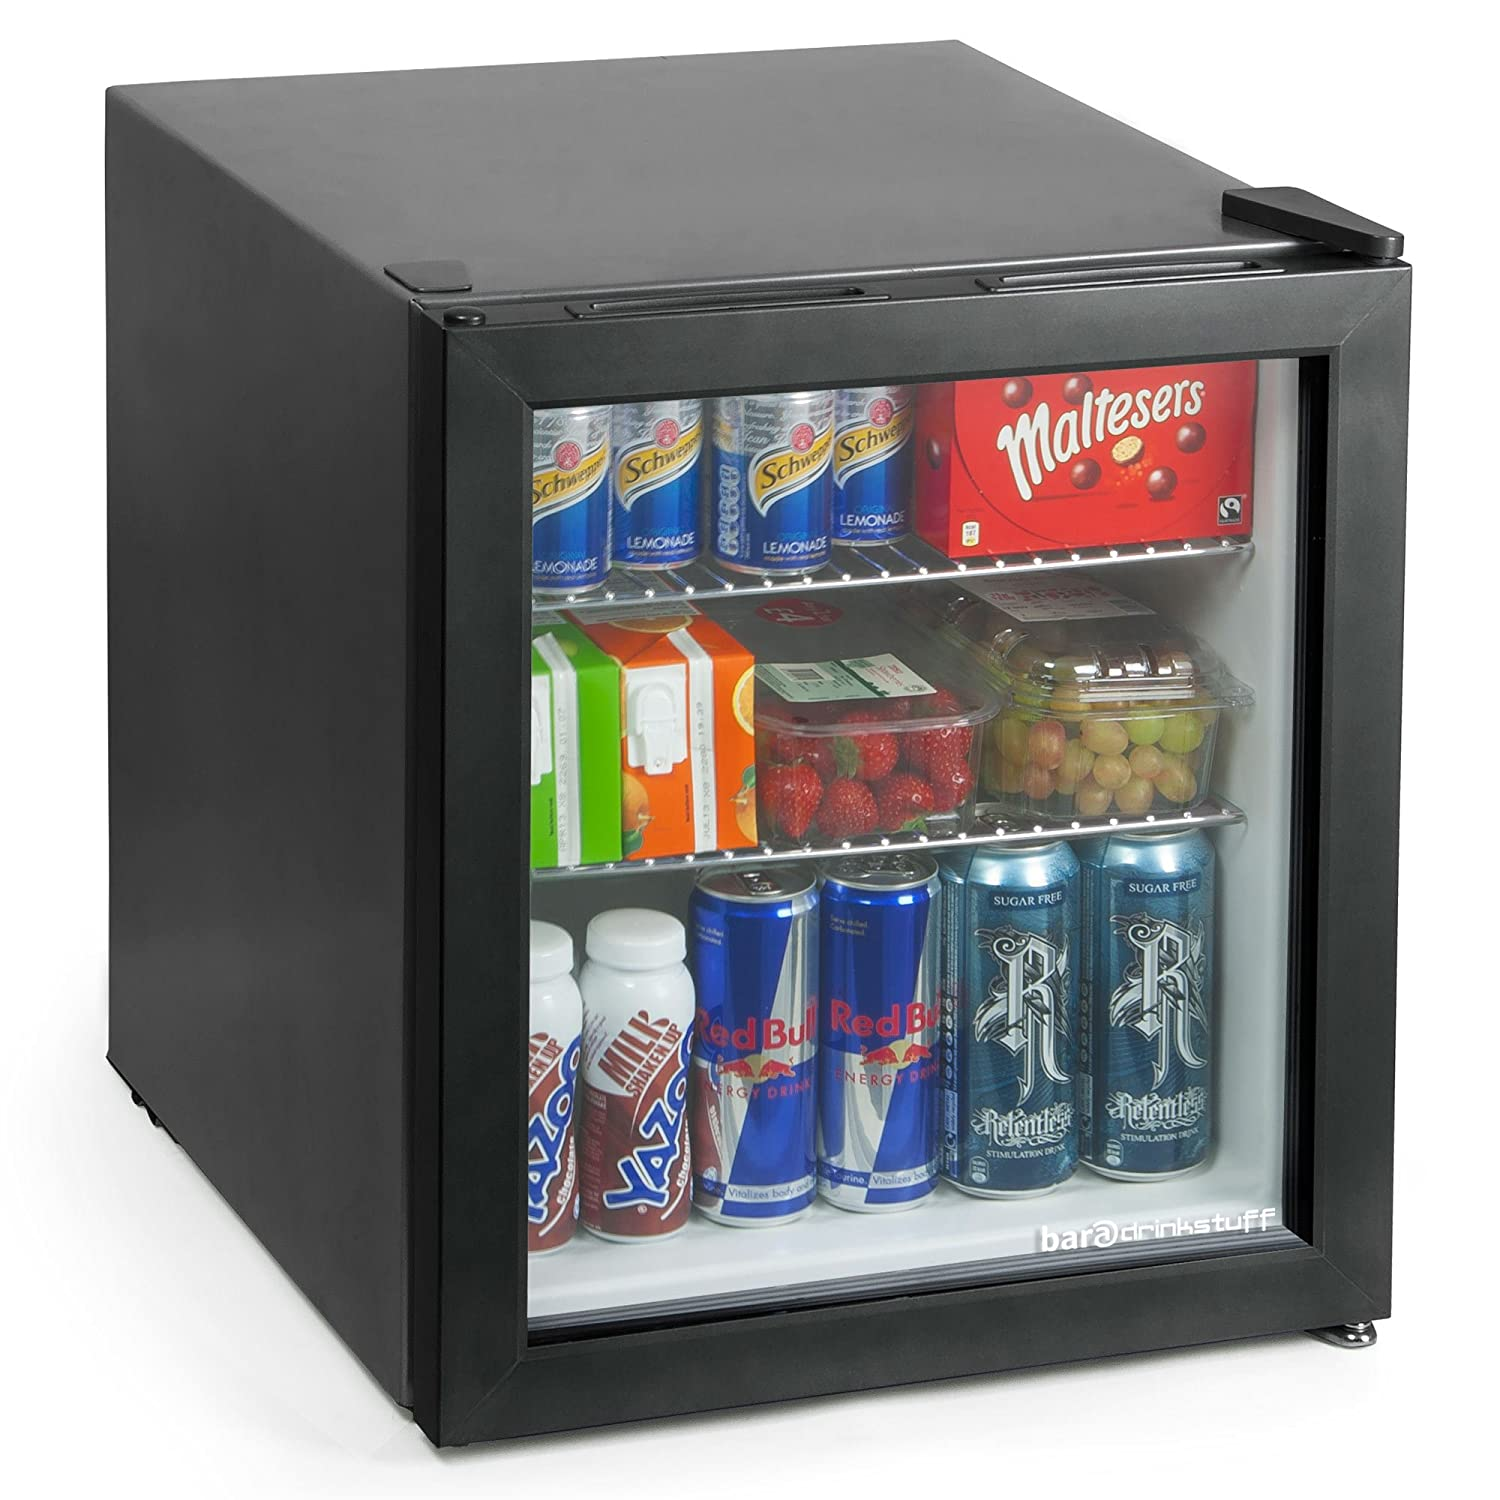 bar@drinkstuff Frostbite Mini Fridge Black - 49ltr Compact Refrigerator Holds 45 x 330ml Cans | A+ Energy Rating